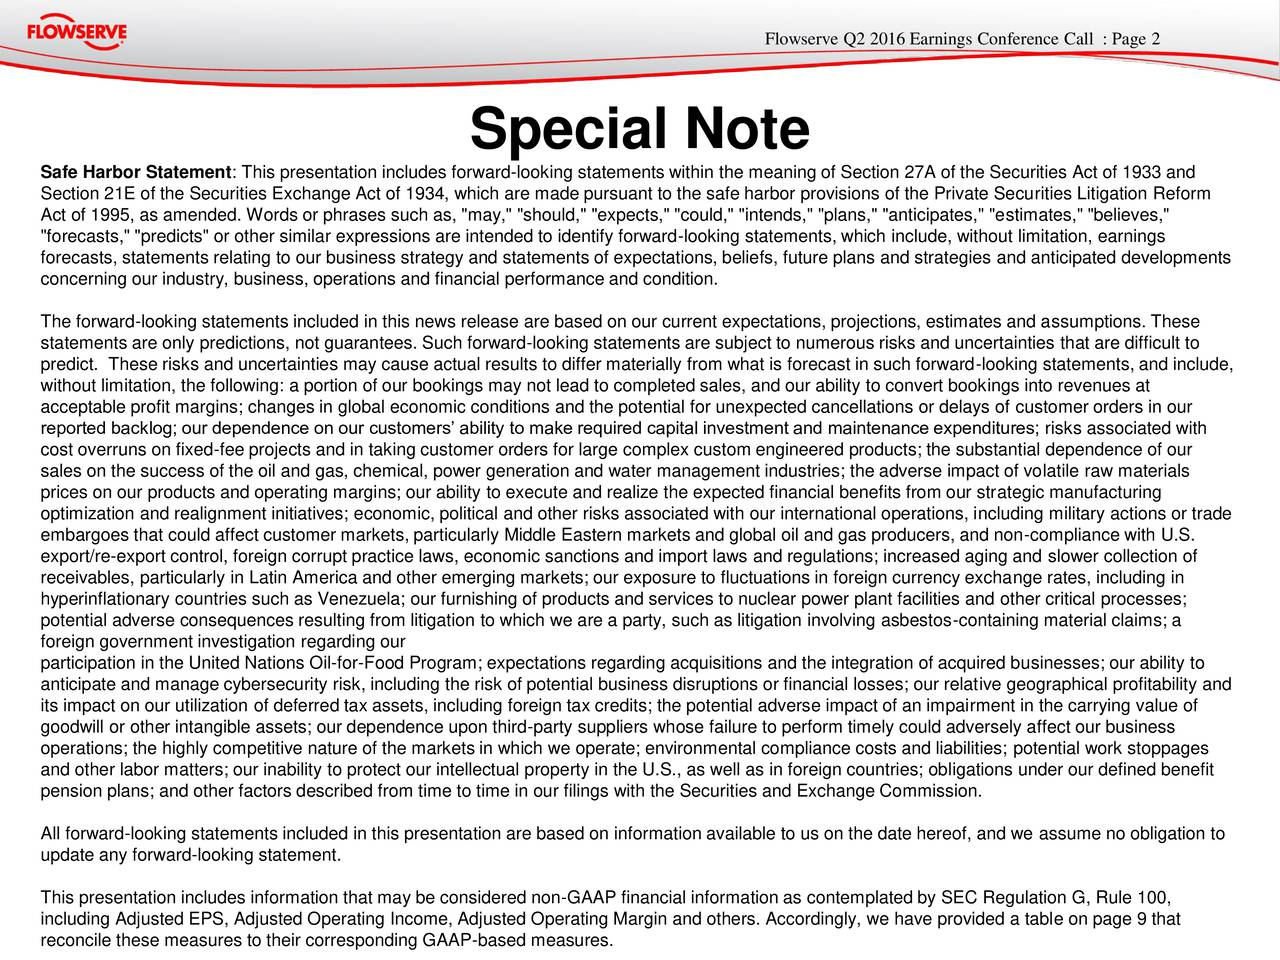 "Special Note Safe Harbor Statement: This presentation includes forward-looking statements within the meaning of Section 27A of the Securities Act of 1933 and Section 21E of the Securities Exchange Act of 1934, which are made pursuant to the safe harbor provisions of the Private Securities Litigation Reform Act of 1995, as amended. Words or phrases such as, ""may,"" ""should,"" ""expects,"" ""could,"" ""intends,"" ""plans,"" ""anticipates,"" ""estimates,"" ""believes,"" ""forecasts,"" ""predicts"" or other similar expressions are intended to identify forward-looking statements, which include, without limitation, earnings forecasts, statements relating to our business strategy and statements of expectations, beliefs, future plans and strategies and anticipated developments concerning our industry, business, operations and financial performance and condition. The forward-looking statements included in this news release are based on our current expectations, projections, estimates and assumptions. These statements are only predictions, not guarantees. Such forward-looking statements are subject to numerous risks and uncertainties that are difficult to predict. These risks and uncertainties may cause actual results to differ materially from what is forecast in such forward-looking statements, and include, without limitation, the following: a portion of our bookings may not lead to completed sales, and our ability to convert bookings into revenues at acceptable profit margins; changes in global economic conditions and the potential for unexpected cancellations or delays of customer orders in our reported backlog; our dependence on our customers ability to make required capital investment and maintenance expenditures; risks associated with cost overruns on fixed-fee projects and in taking customer orders for large complex custom engineered products; the substantial dependence of our sales on the success of the oil and gas, chemical, power generation and water management industries; the adverse impact of volatile raw materials prices on our products and operating margins; our ability to execute and realize the expected financial benefits from our strategic manufacturing optimization and realignment initiatives; economic, political and other risks associated with our international operations, including military actions or trade embargoes that could affect customer markets, particularly Middle Eastern markets and global oil and gas producers, and non-compliance with U.S. export/re-export control, foreign corrupt practice laws, economic sanctions and import laws and regulations; increased aging and slower collection of receivables, particularly in Latin America and other emerging markets; our exposure to fluctuations in foreign currency exchange rates, including in hyperinflationary countries such as Venezuela; our furnishing of products and services to nuclear power plant facilities and other critical processes; potential adverse consequences resulting from litigation to which we are a party, such as litigation involving asbestos-containing material claims; a foreign government investigation regarding our participation in the United Nations Oil-for-Food Program; expectations regarding acquisitions and the integration of acquired businesses; our ability to anticipate and manage cybersecurity risk, including the risk of potential business disruptions or financial losses; our relative geographical profitability and its impact on our utilization of deferred tax assets, including foreign tax credits; the potential adverse impact of an impairment in the carrying value of goodwill or other intangible assets; our dependence upon third-party suppliers whose failure to perform timely could adversely affect our business operations; the highly competitive nature of the markets in which we operate; environmental compliance costs and liabilities; potential work stoppages and other labor matters; our inability to protect our intellectual property in the U.S., as well as in foreign countries; obligations under our defined benefit pension plans; and other factors described from time to time in our filings with the Securities and Exchange Commission. All forward-looking statements included in this presentation are based on information available to us on the date hereof, and we assume no obligation to update any forward-looking statement. This presentation includes information that may be considered non-GAAP financial information as contemplated by SEC Regulation G, Rule 100, including Adjusted EPS, Adjusted Operating Income, Adjusted Operating Margin and others. Accordingly, we have provided a table on page 9 that reconcile these measures to their corresponding GAAP-based measures."